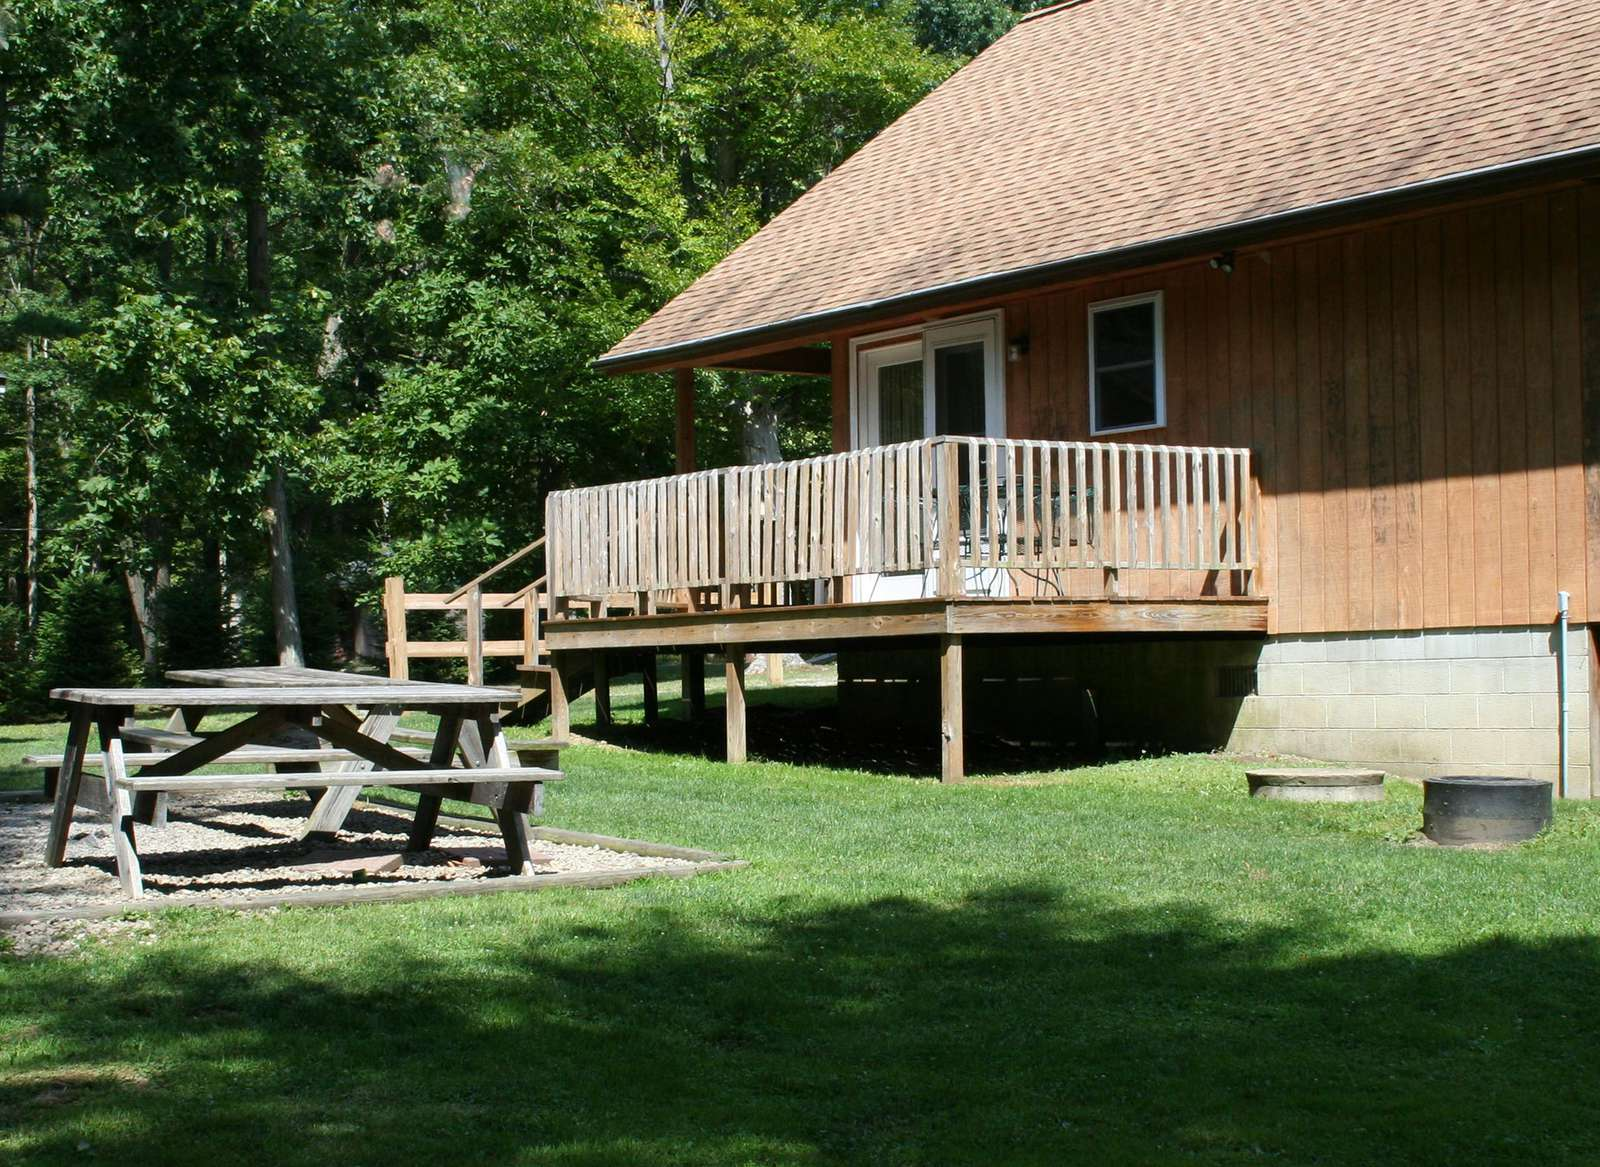 Side View showing Deck and Picnic Area